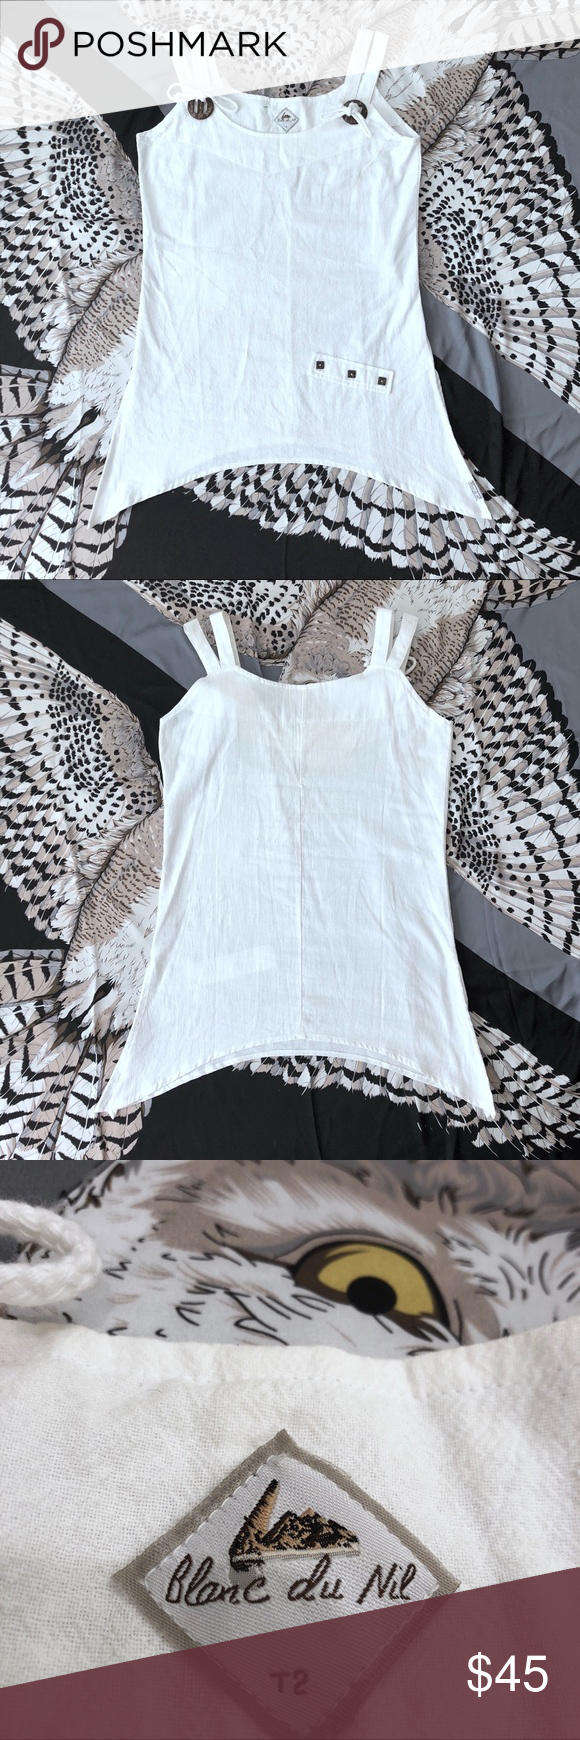 42d246b0144a8 Blanc du Nil Linen Sleeveless Top Blanc du Nil Linen Sleeveless Top. 100%  Pure